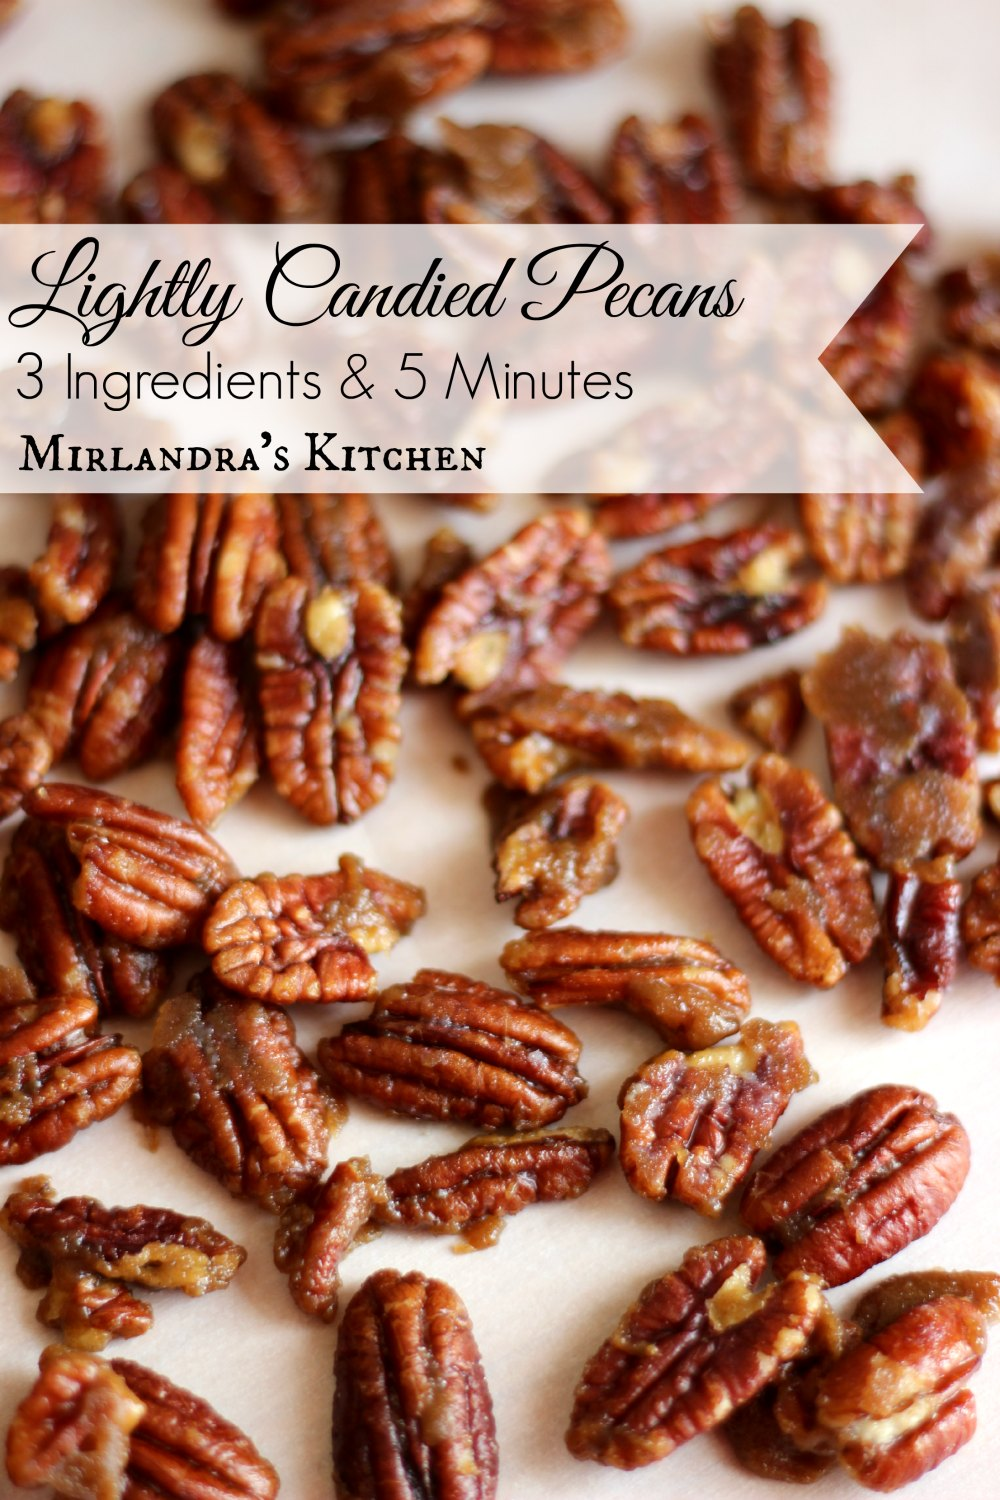 Candied Pecans with a kiss of dark brown sugar and butter, perfect with pumpkin pie or alone in a dish. Only three ingredients and 5 minutes. Easy as pie!